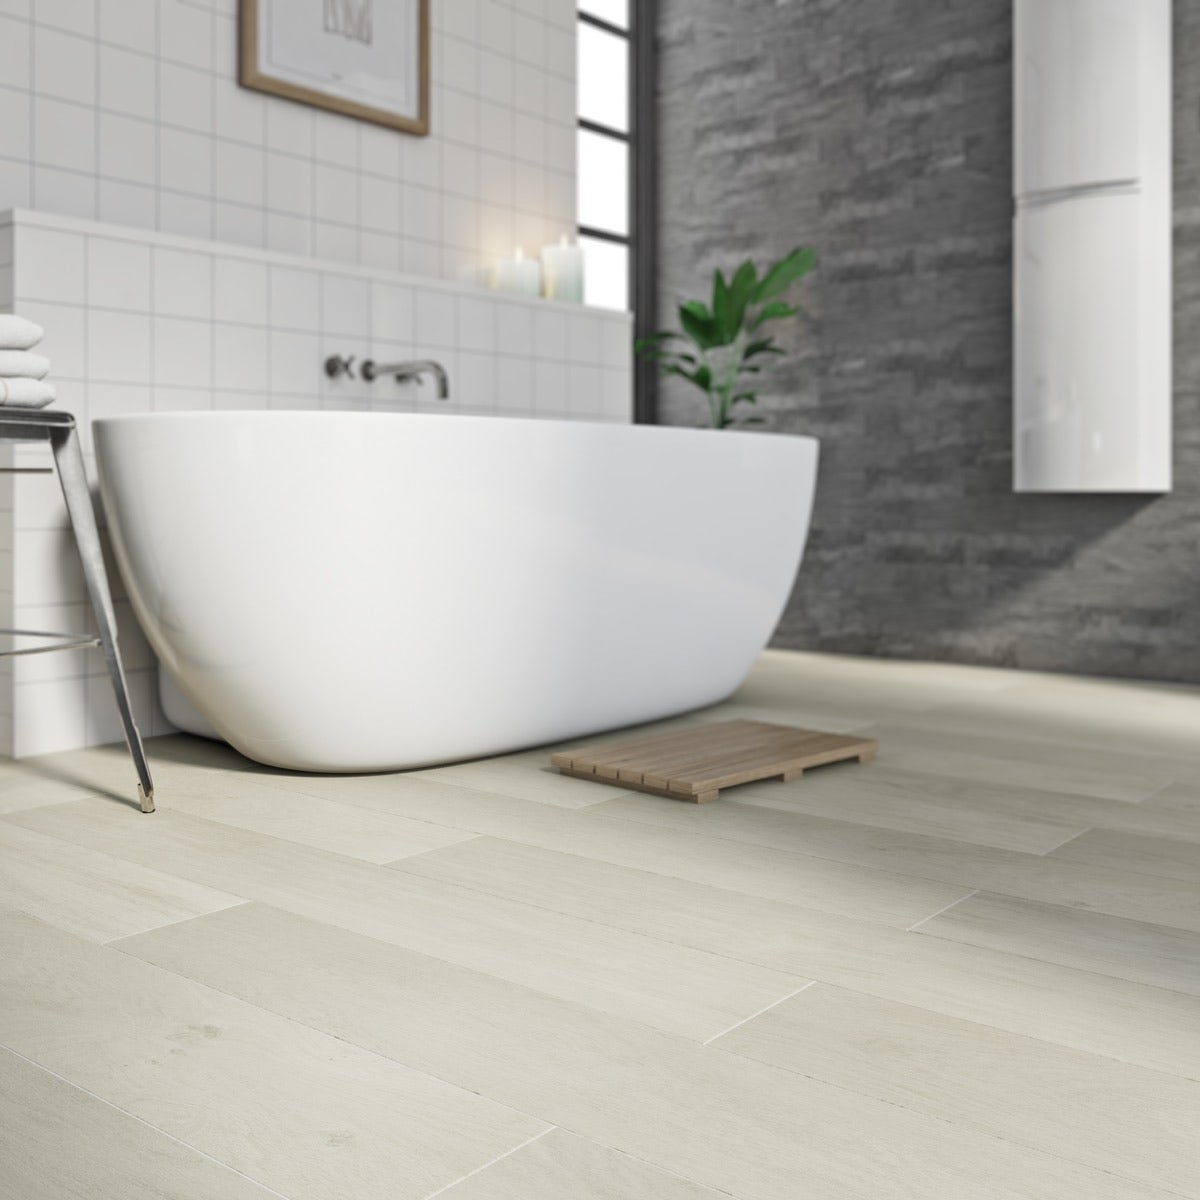 Waterproof Flooring For Kitchens Vinyl Flooring Bathroom 3d Bathroom Floor Tiles Vinyl Flooring